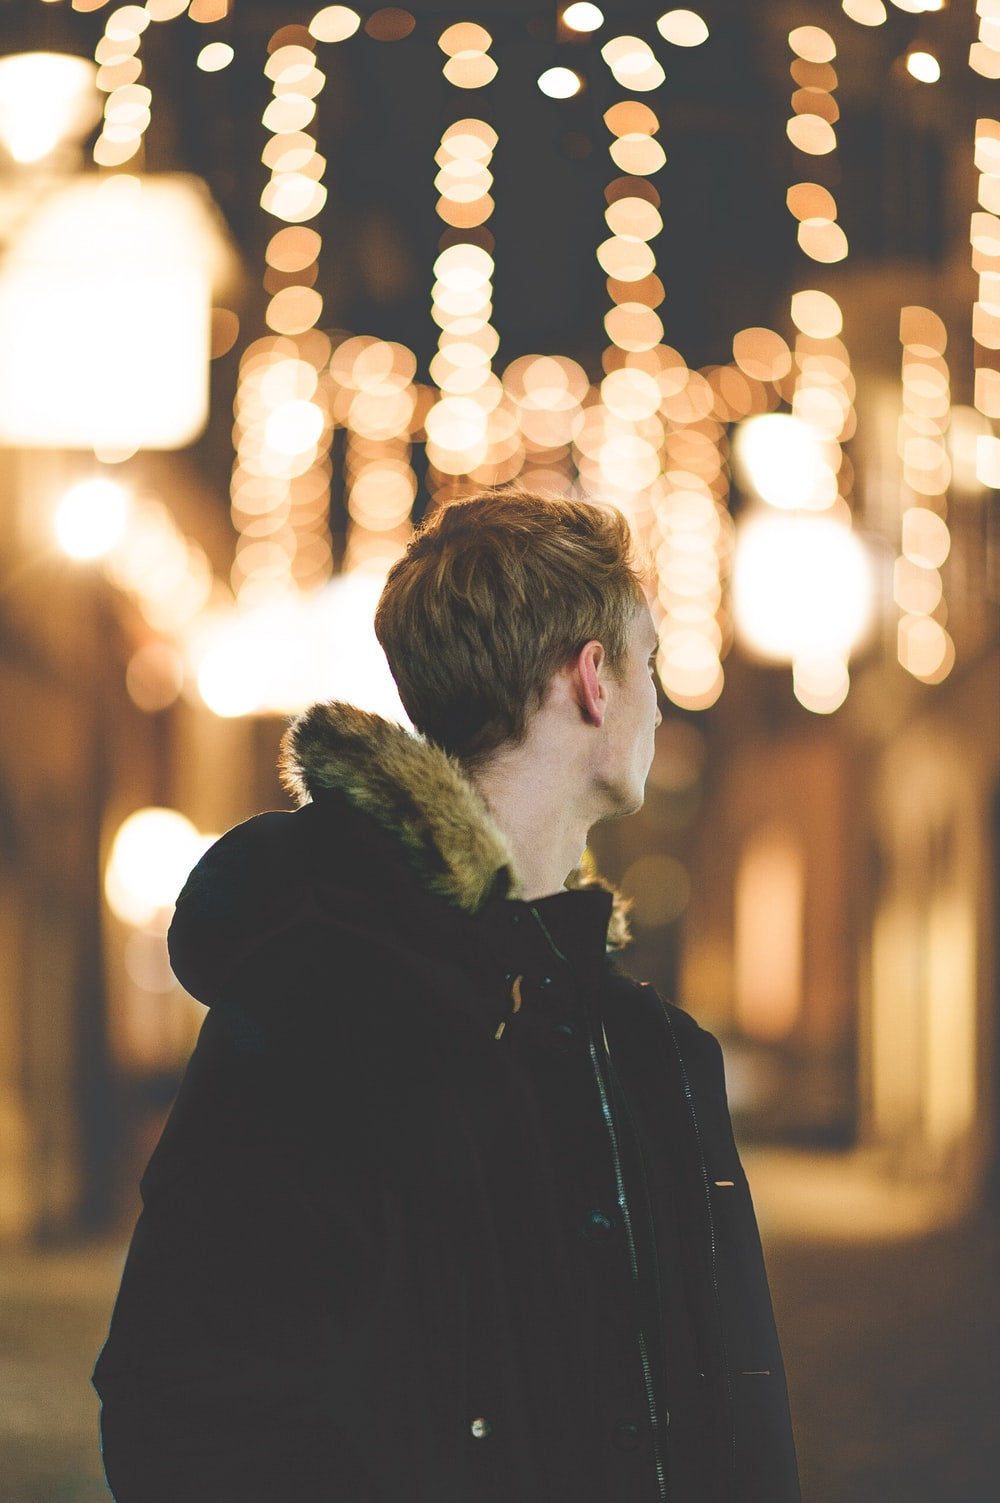 bokeh photograph of man in black parka jacket